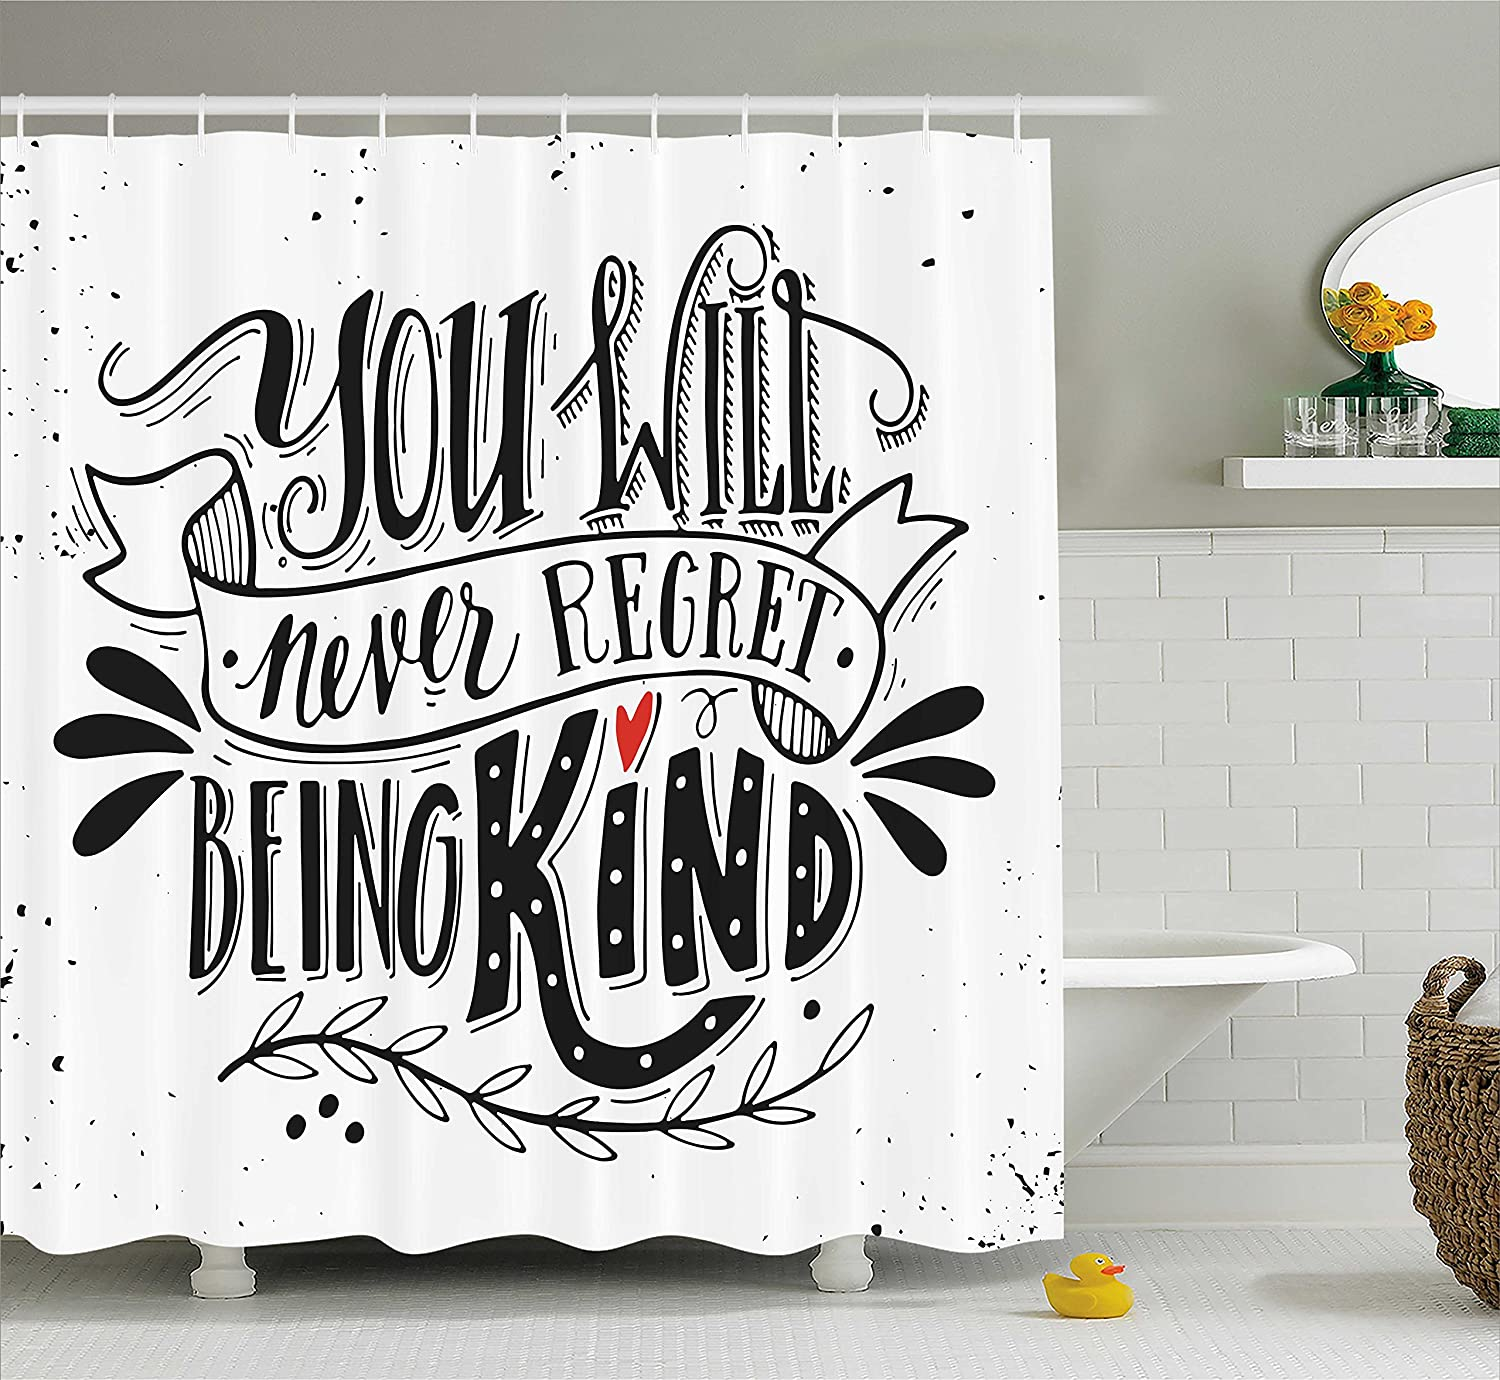 Ambesonne Vintage Shower Curtain You Will Never Regret Being Kind Quote Hand Drawn Lettering Inspirational Fabric Bathroom Decor Set With Hooks